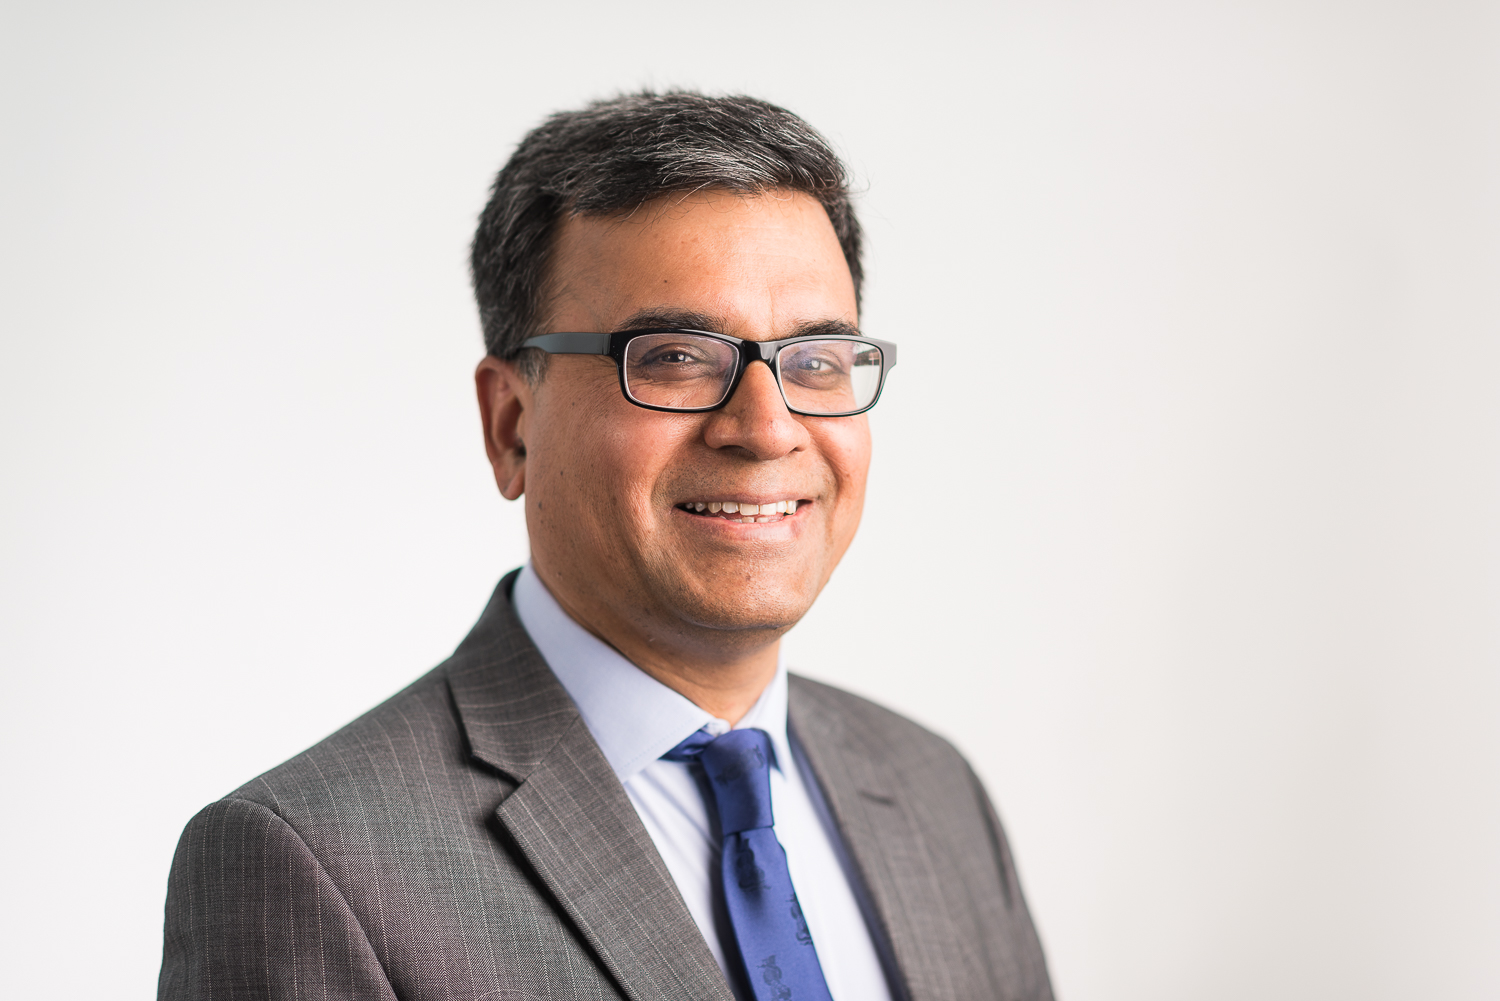 Paresh Kothari is a consultant Consultant Trauma & Orthopaedic Surgeon  at Circle Nottingham